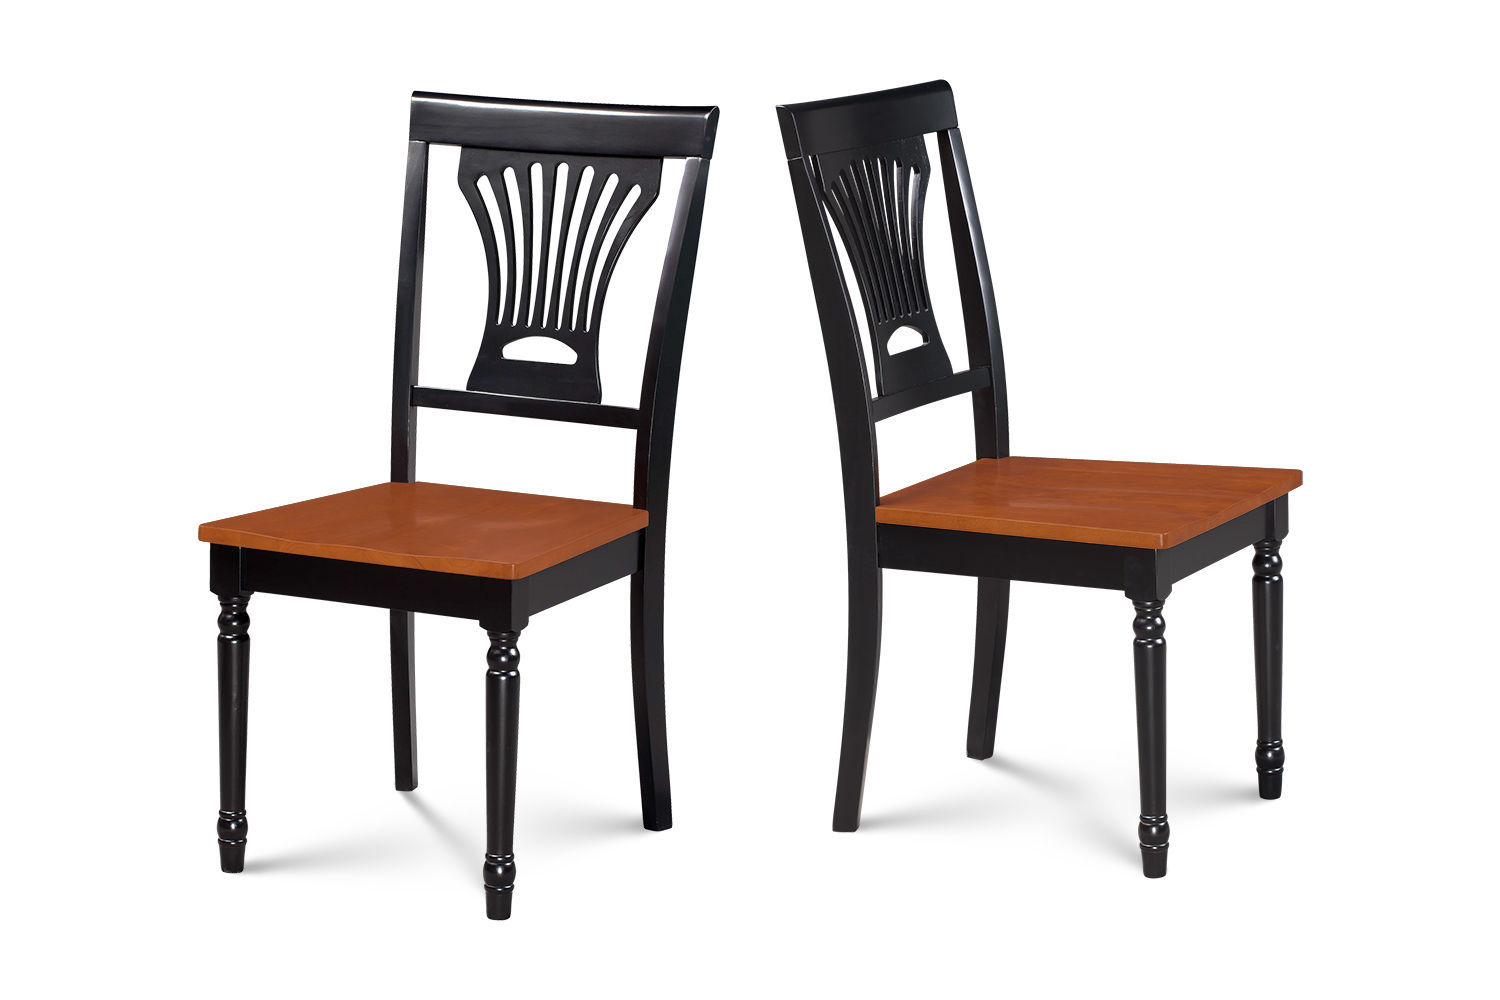 SET OF 2 DINING SIDE CHAIR WITH WOODEN SEATS in BLACK & CHERRY FINISH